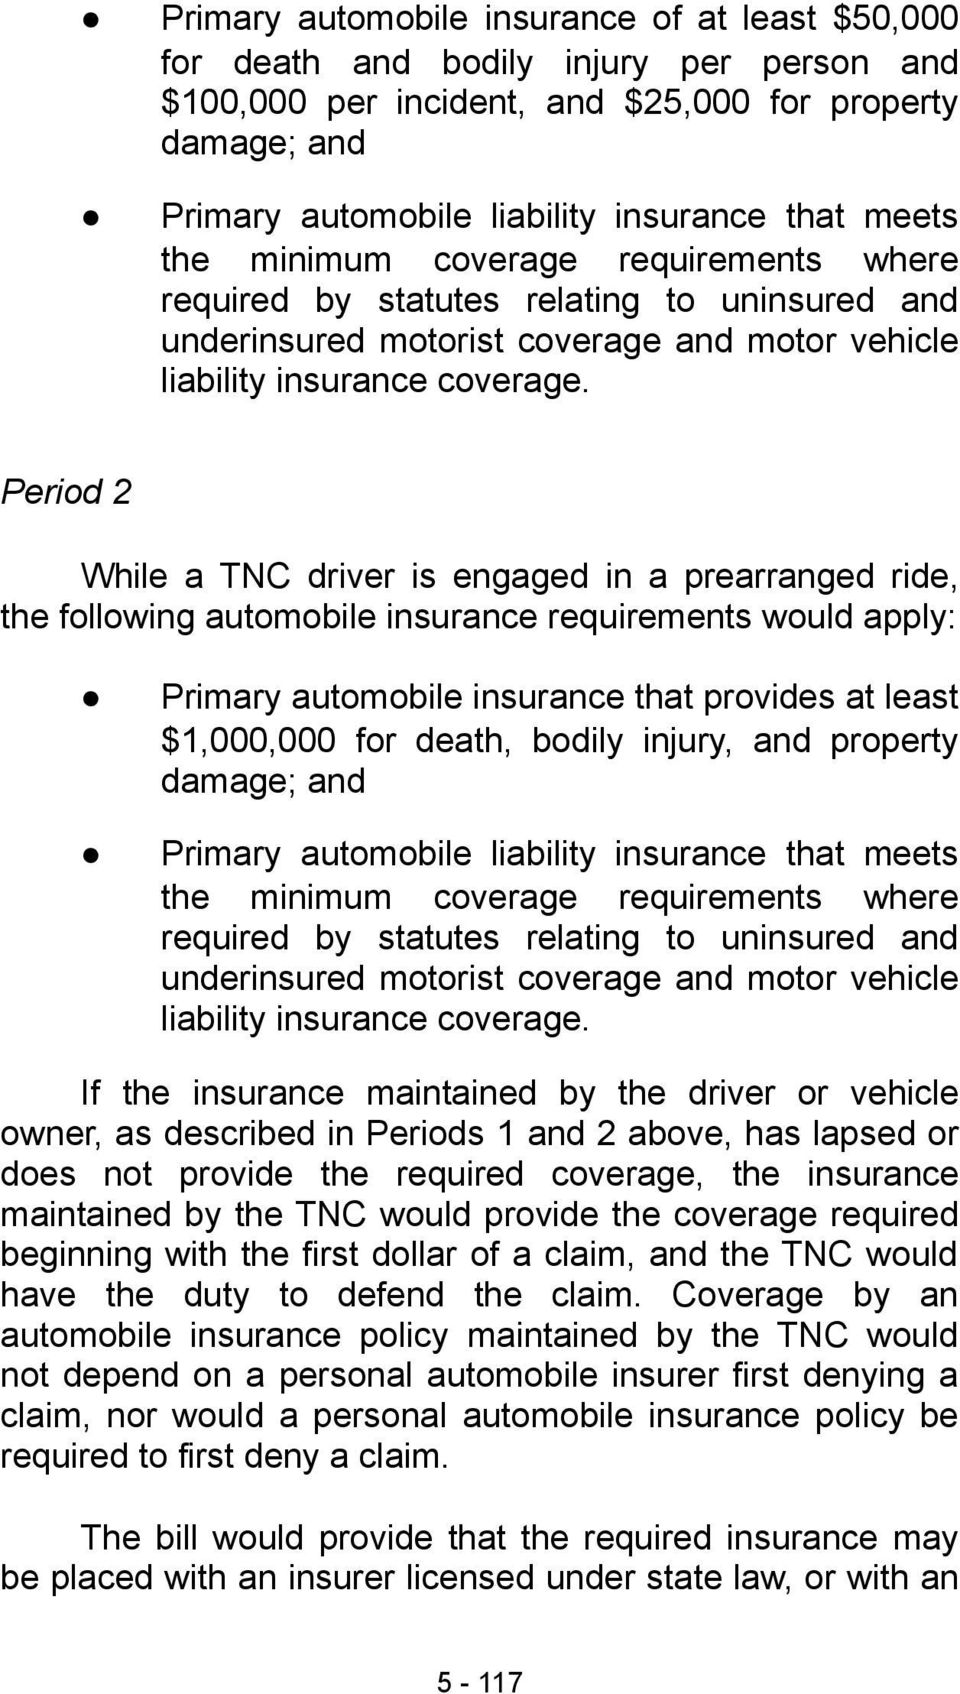 Period 2 While a TNC driver is engaged in a prearranged ride, the following automobile insurance requirements would apply: Primary automobile insurance that provides at least $1,000,000 for death,